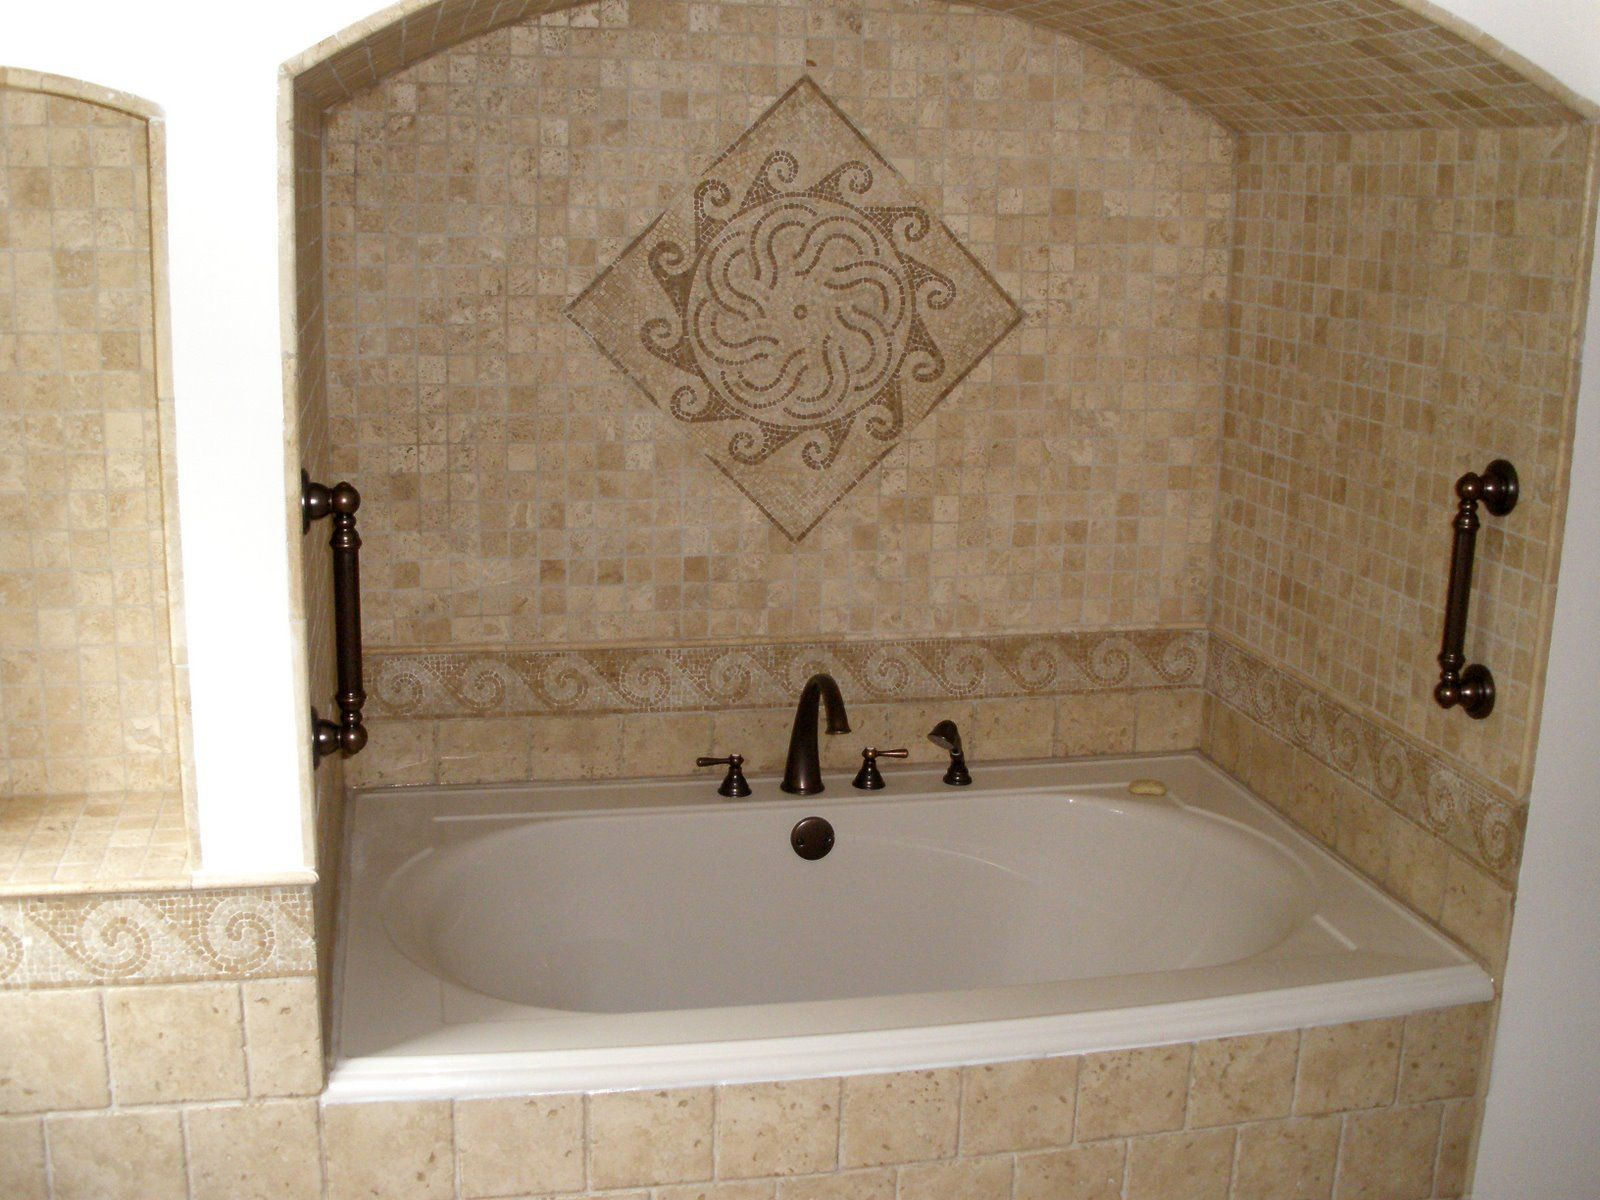 Shower Wall Tile Design 1000 images about bathroom tile design ideas on pinterest tile ideas bathroom shower tiles and tile Bathroom